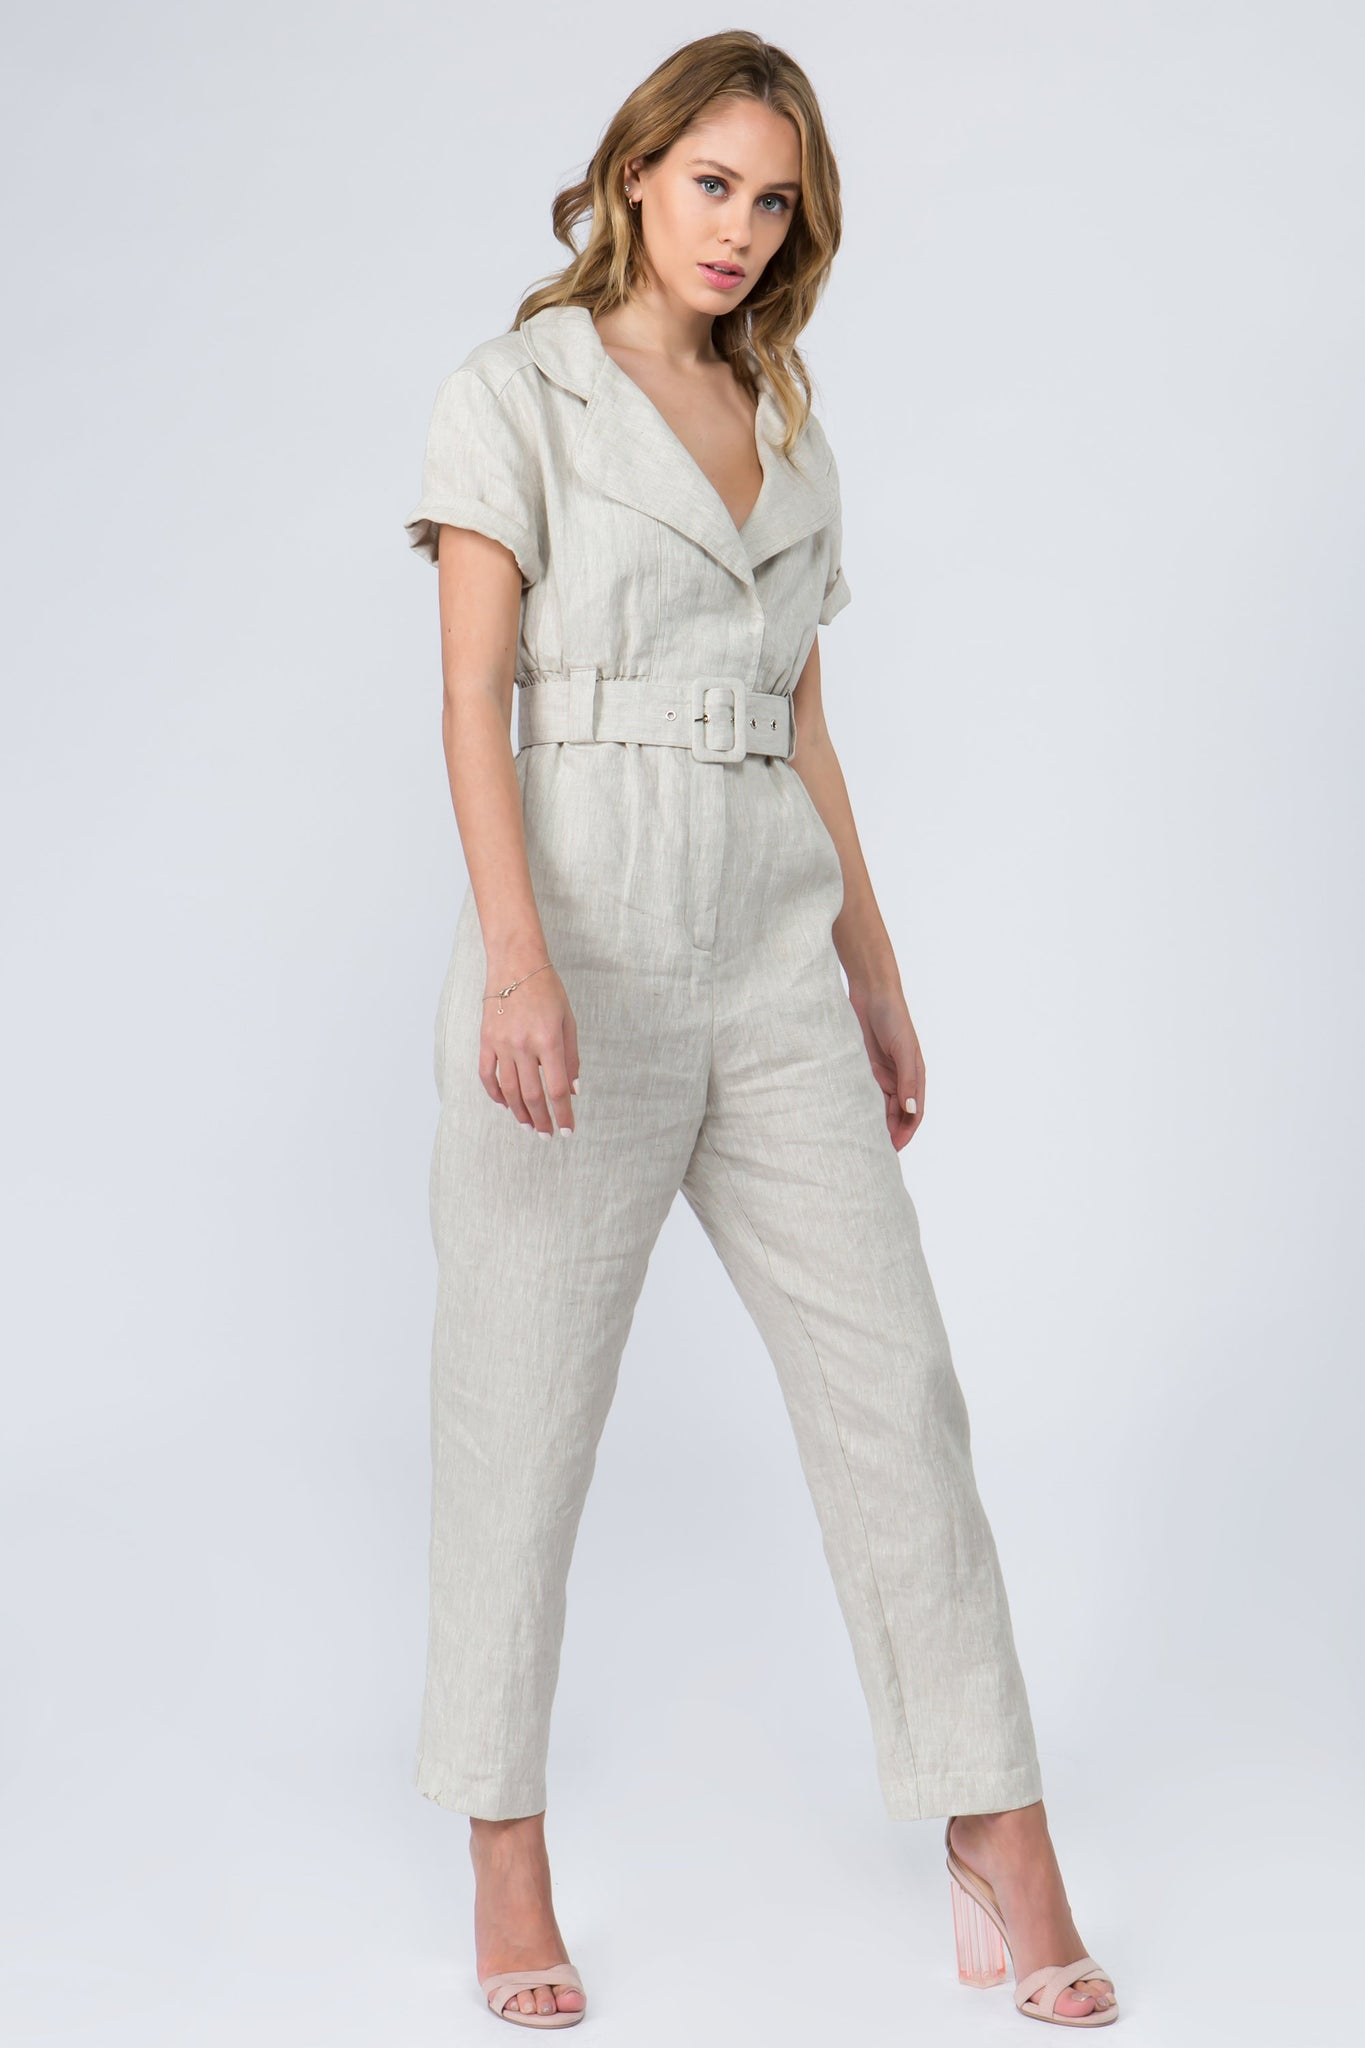 Tan long linen jumpsuit with elastic waist and belt